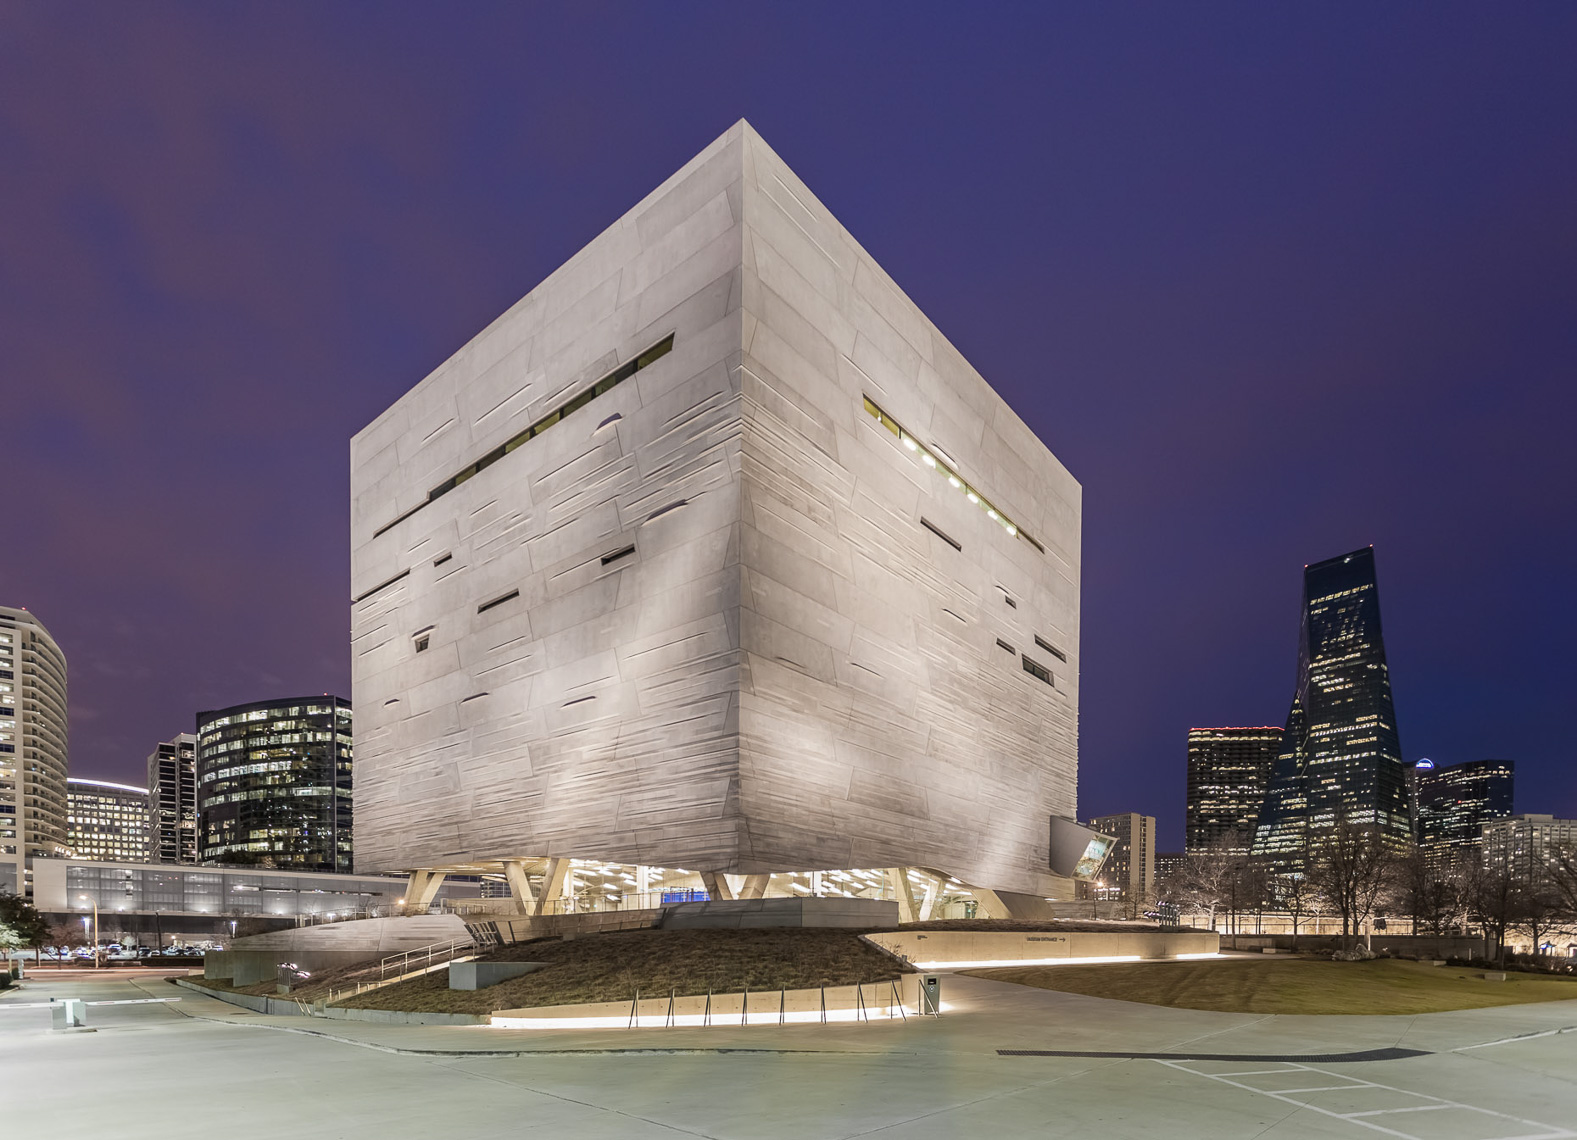 032-3-15_Dallas_PerotMuseum153-Edit-